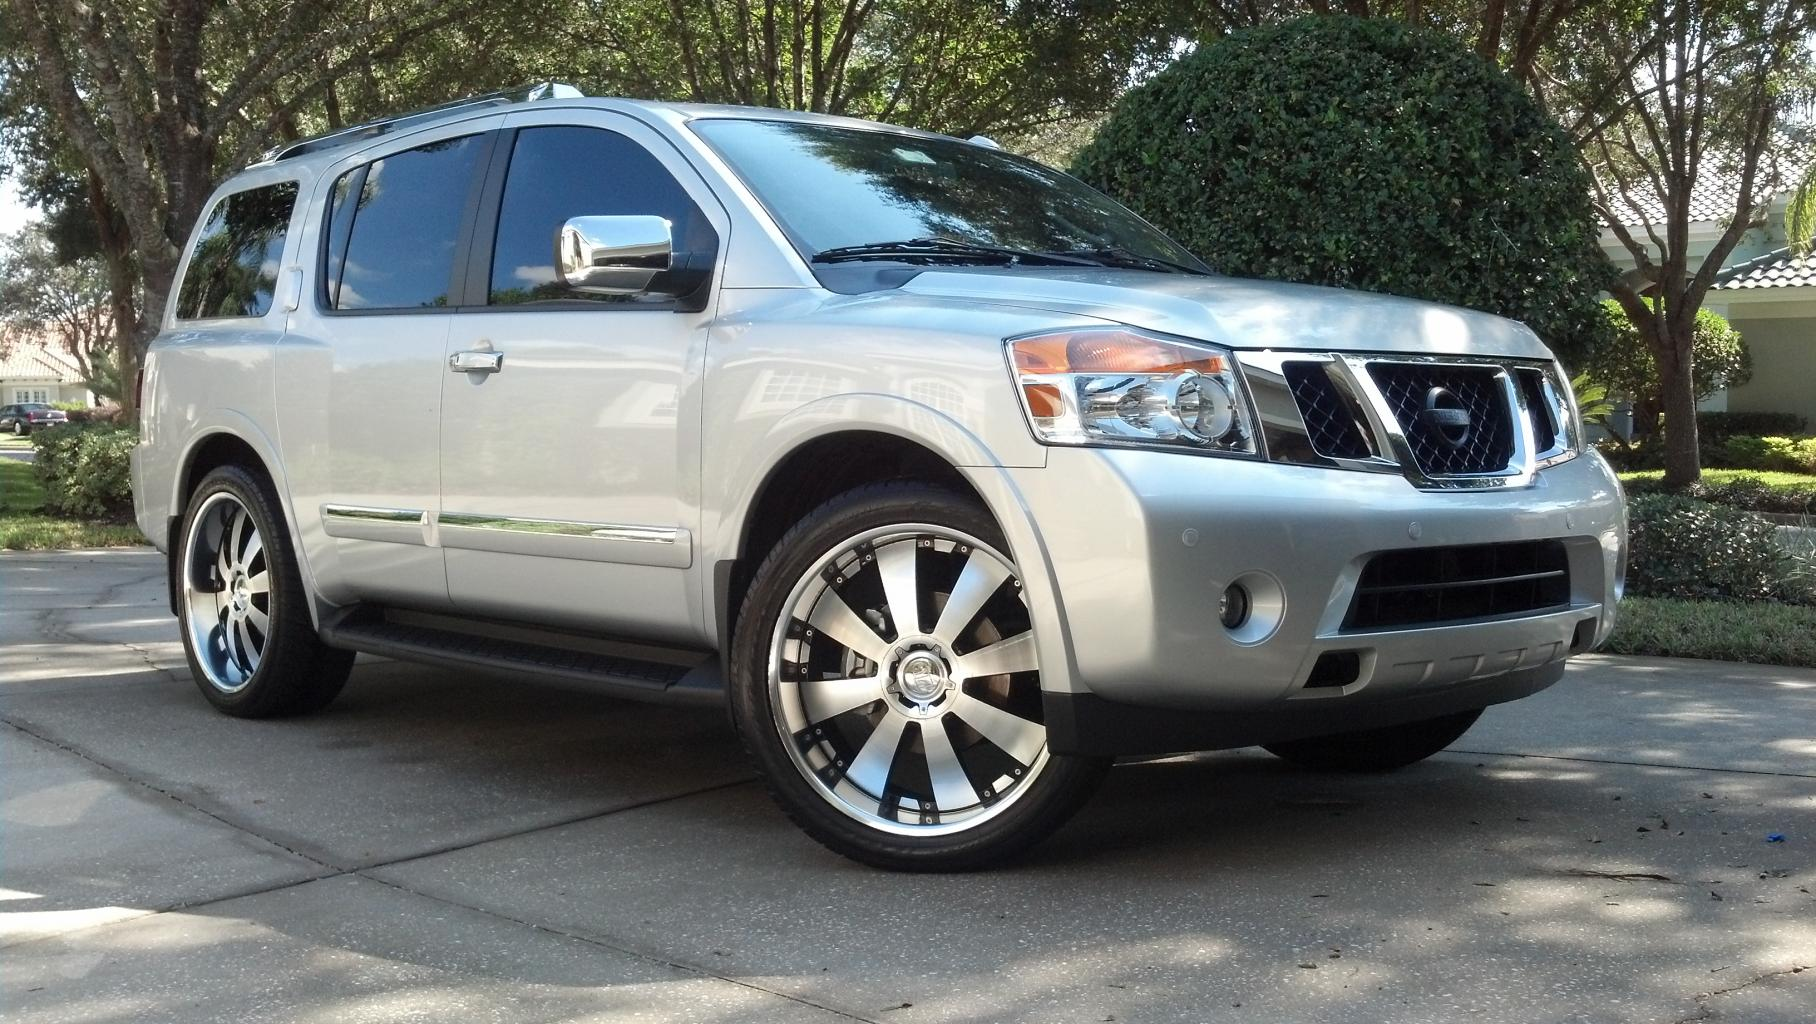 need your opinion - nissan armada forum: armada & infiniti qx56 forums